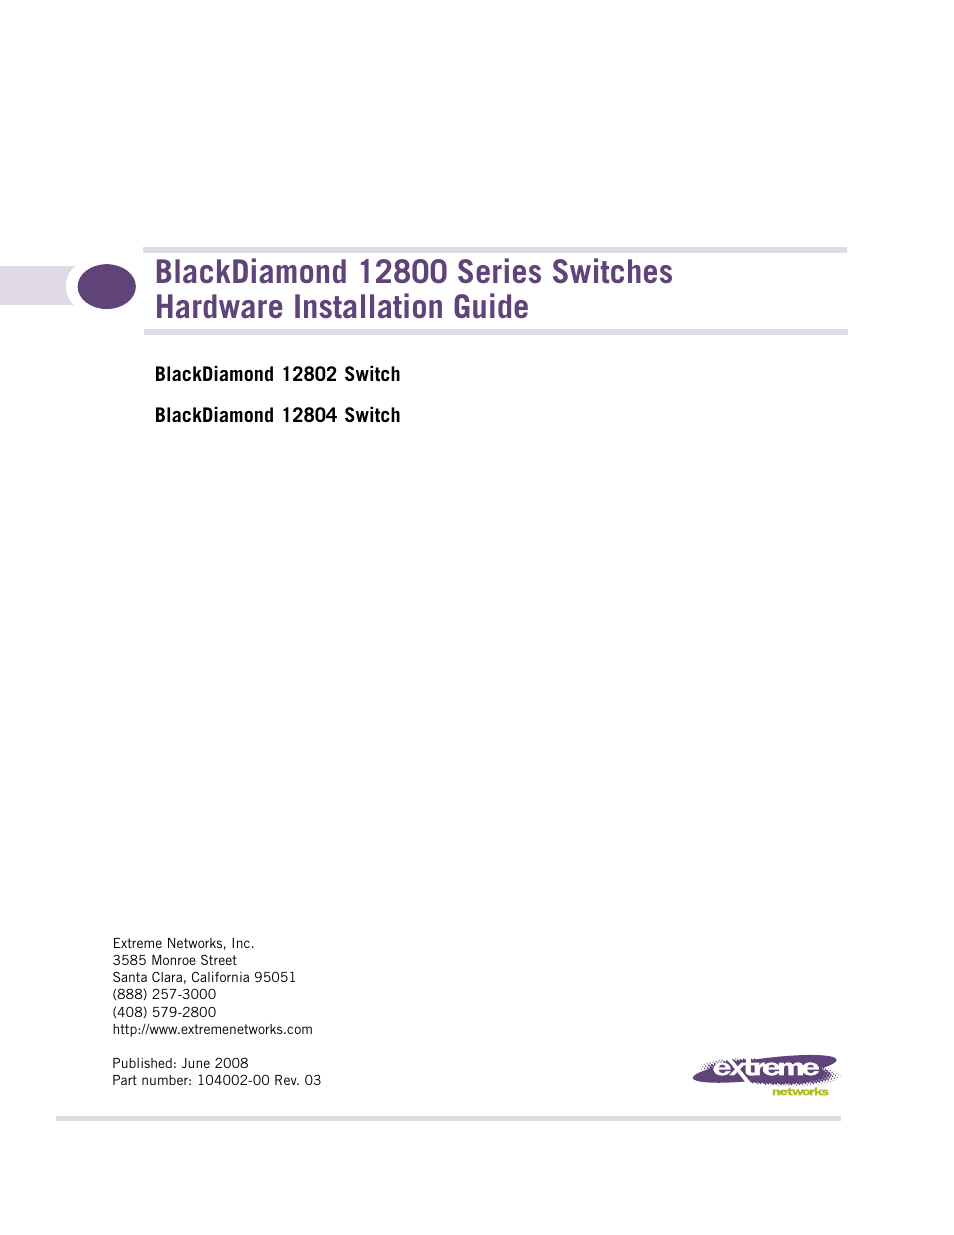 Extreme Networks BlackDiamond 12804 User Manual | 160 pages | Also for:  BlackDiamond 12802